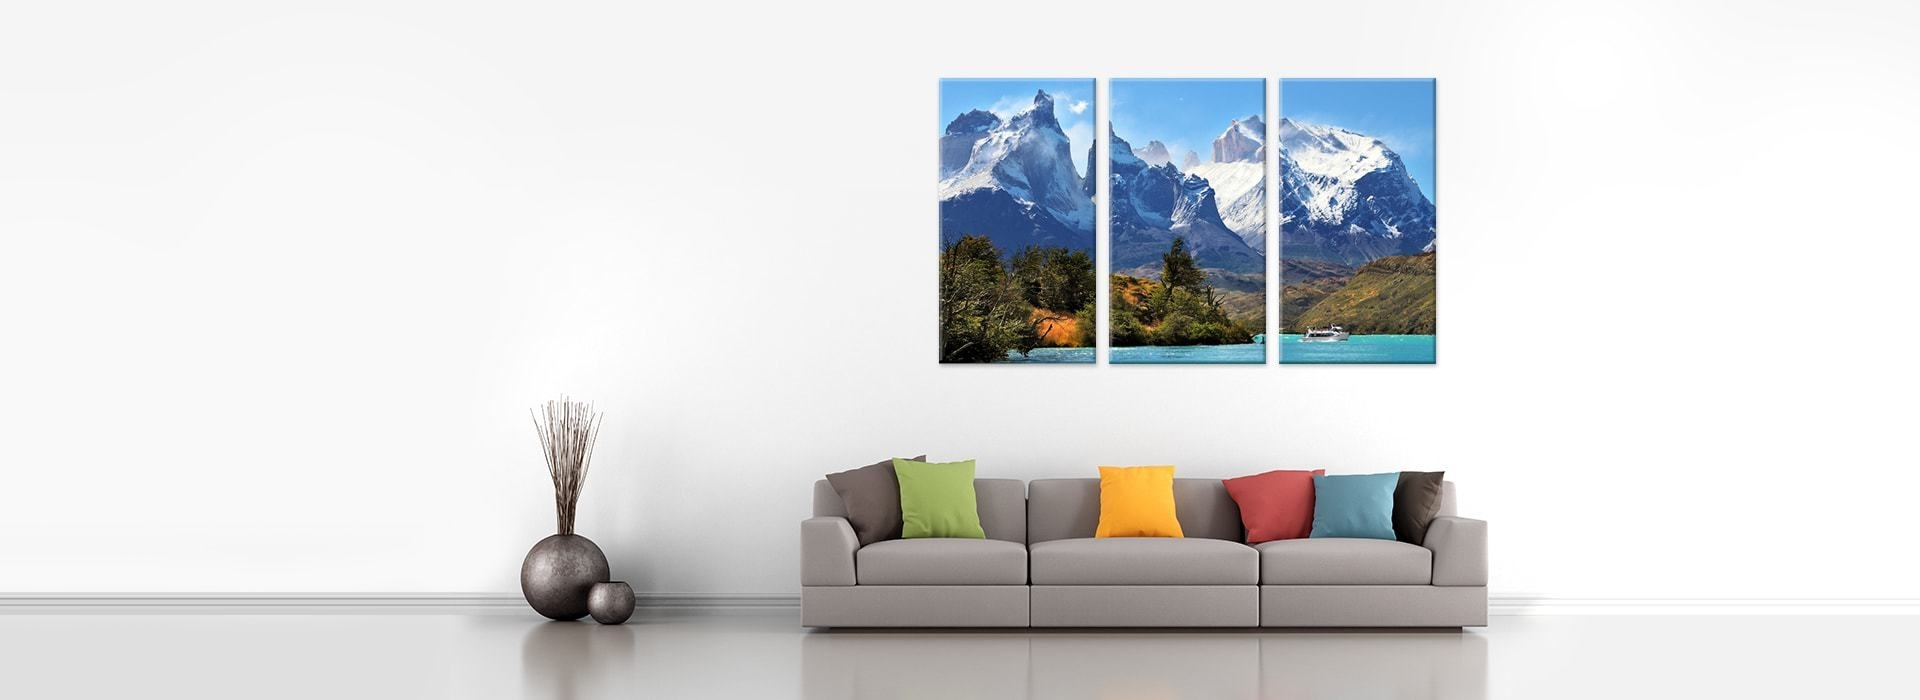 Saving Tips On Personalized Canvas Prints | Music Interprete With Most Up To Date Melbourne Canvas Wall Art (Gallery 9 of 15)